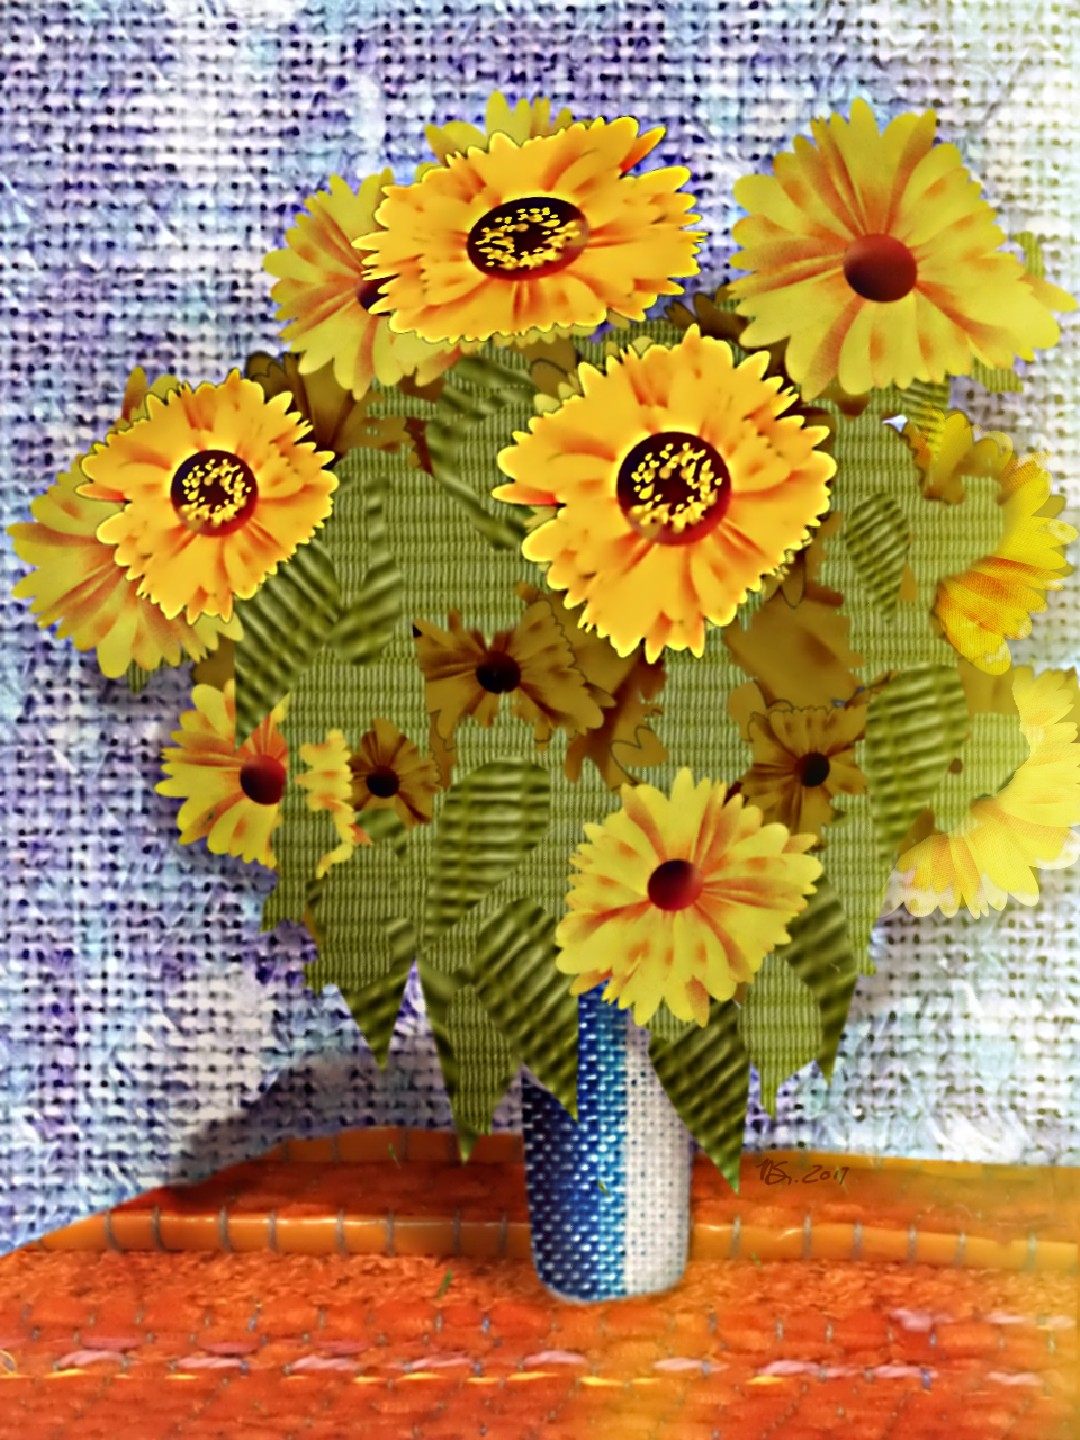 "#collage #smashups #fabric #flowers #sunglowers #bouquet #monet #claudemonet My take on ""Bouquet of Sunflowers"" by Claude Monet @pafreetoedit Fabric for c"